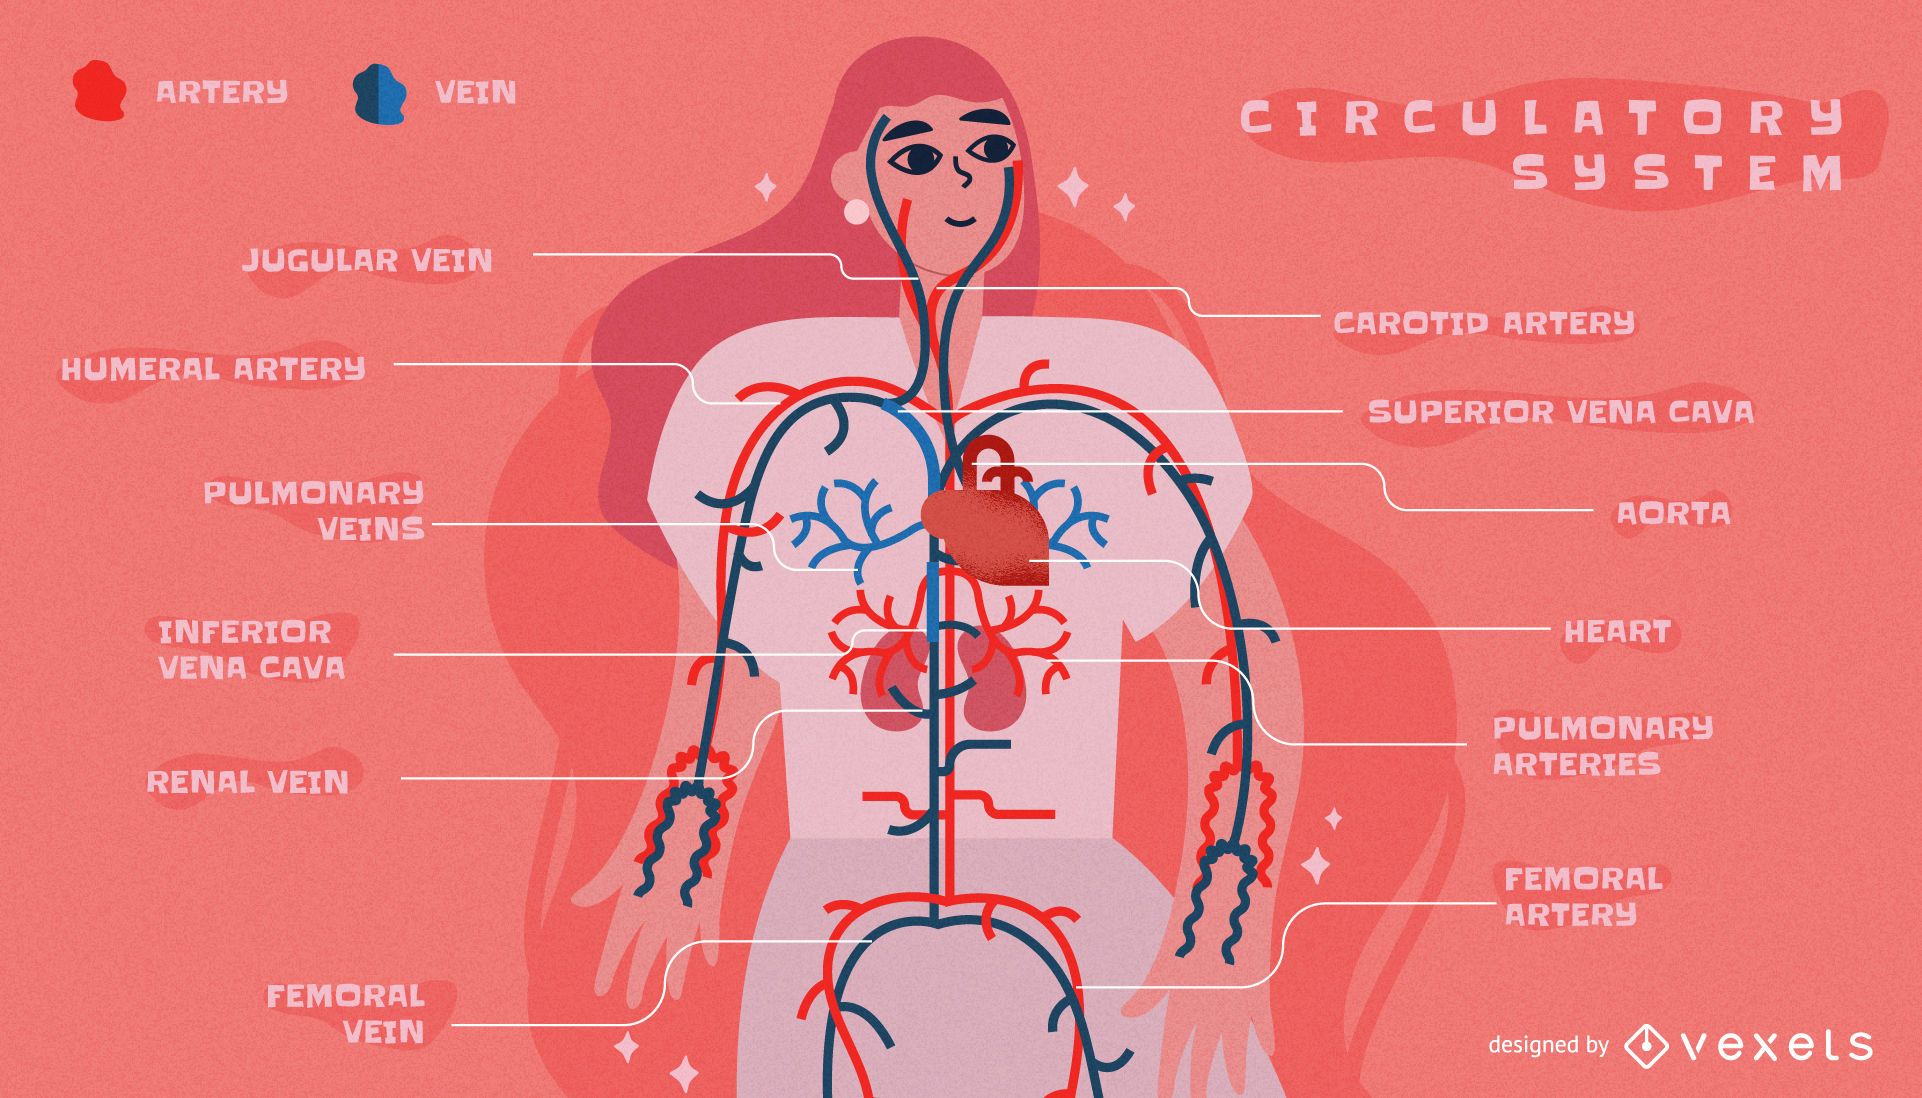 Circulatory system infographic template